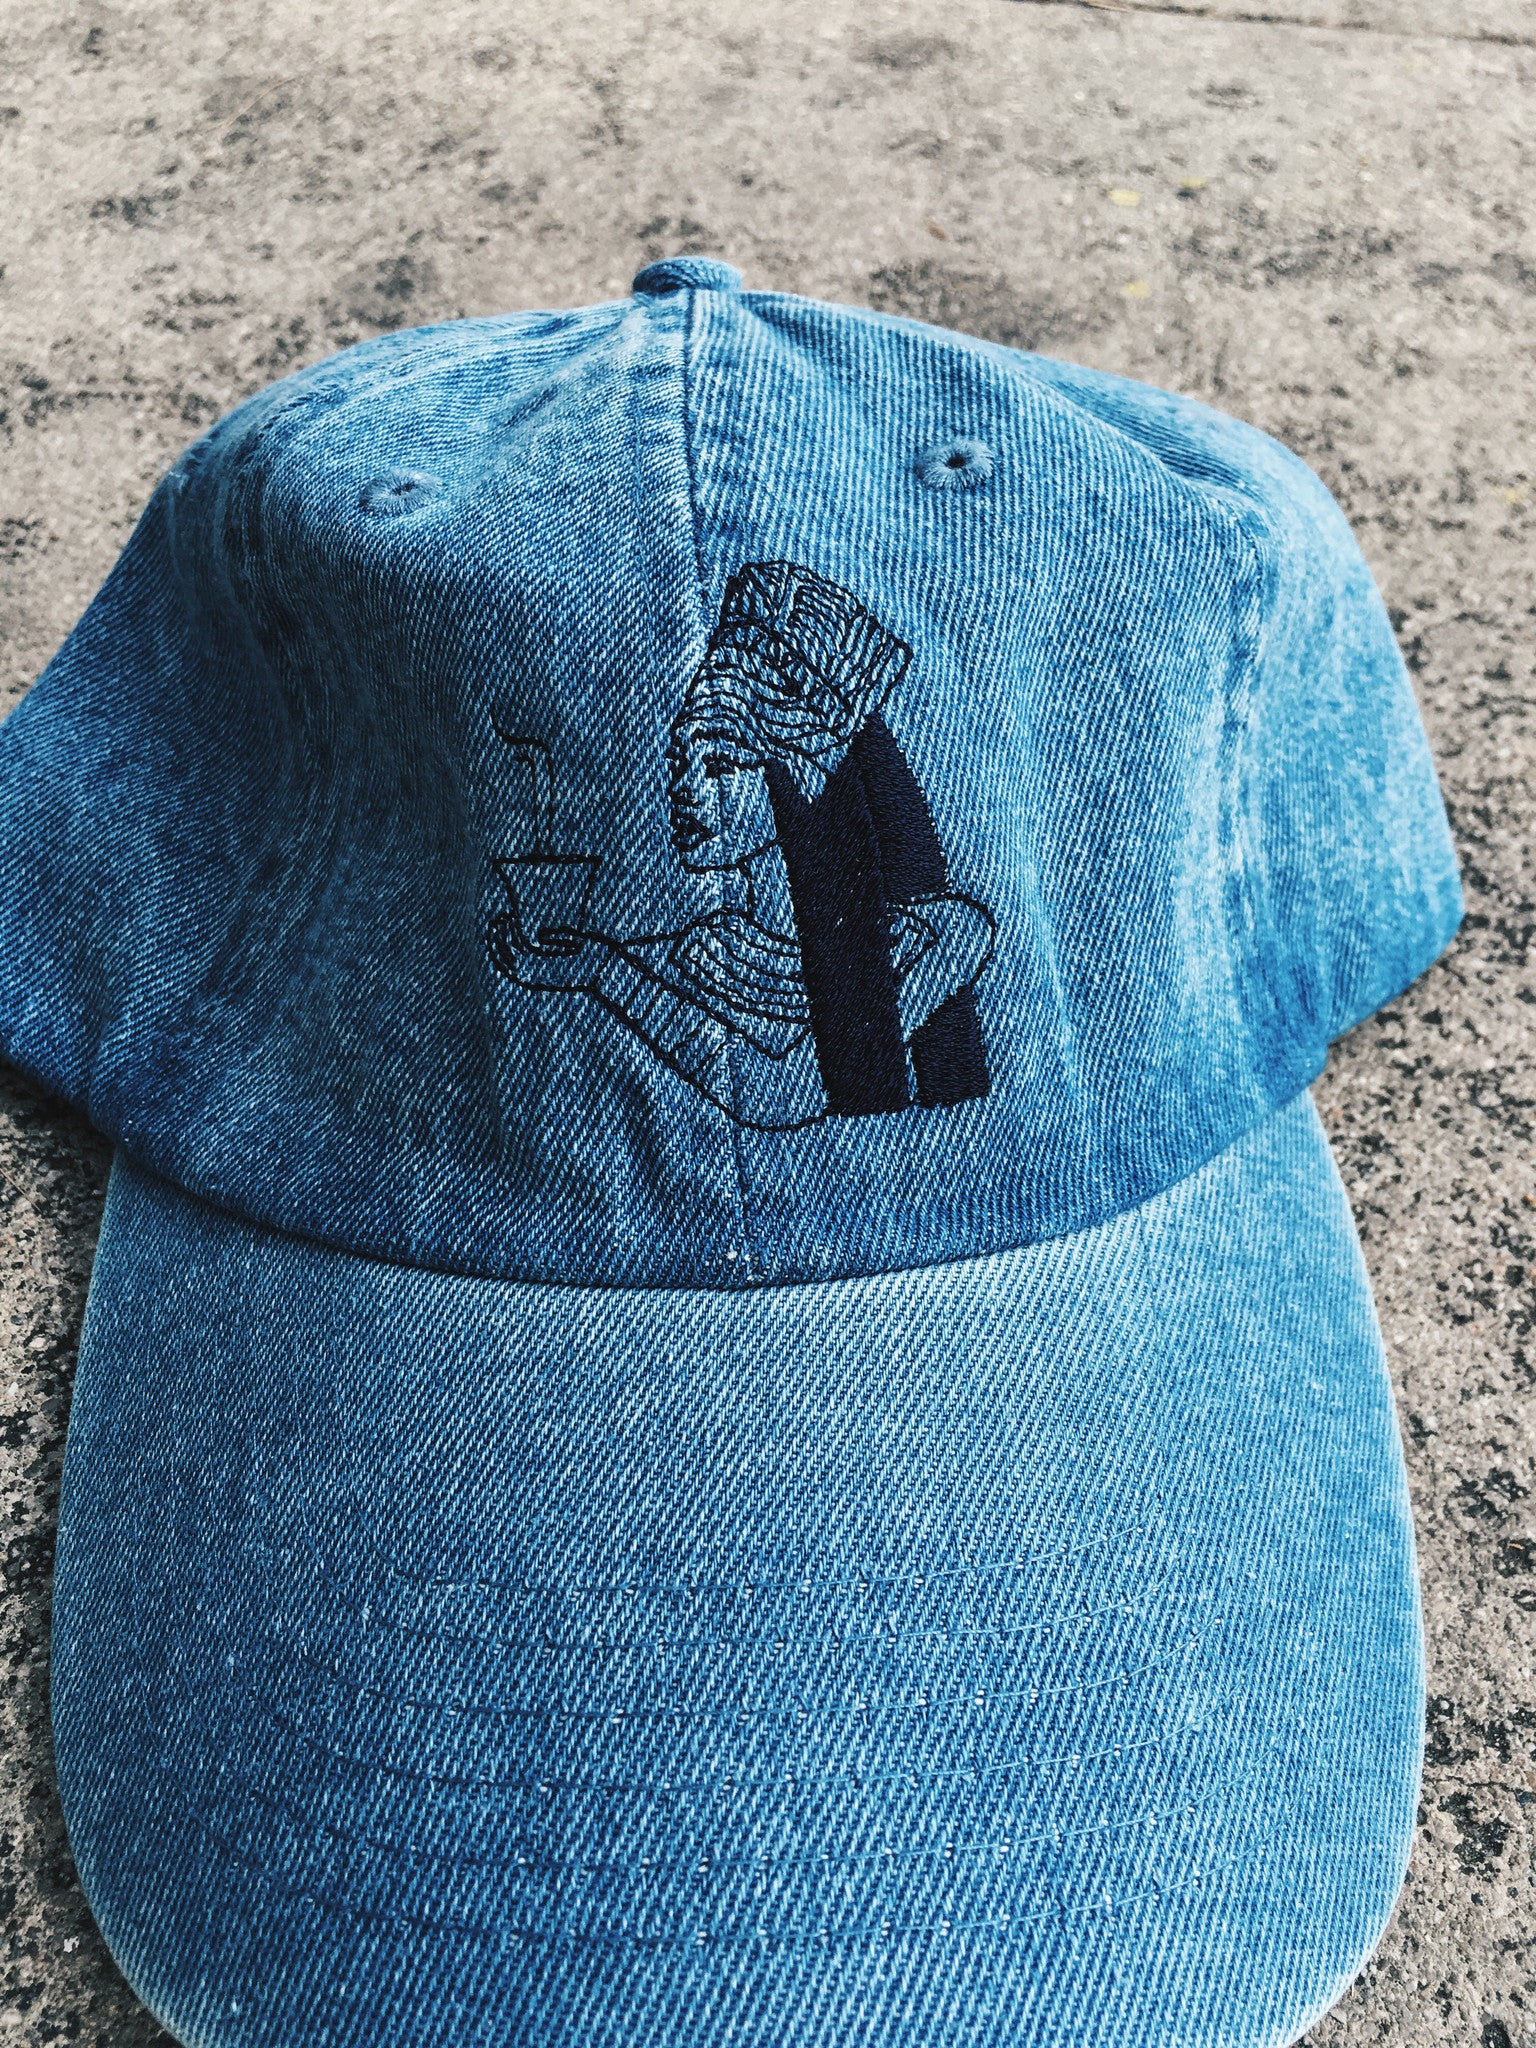 Apule Coffee Denim Dad Hat